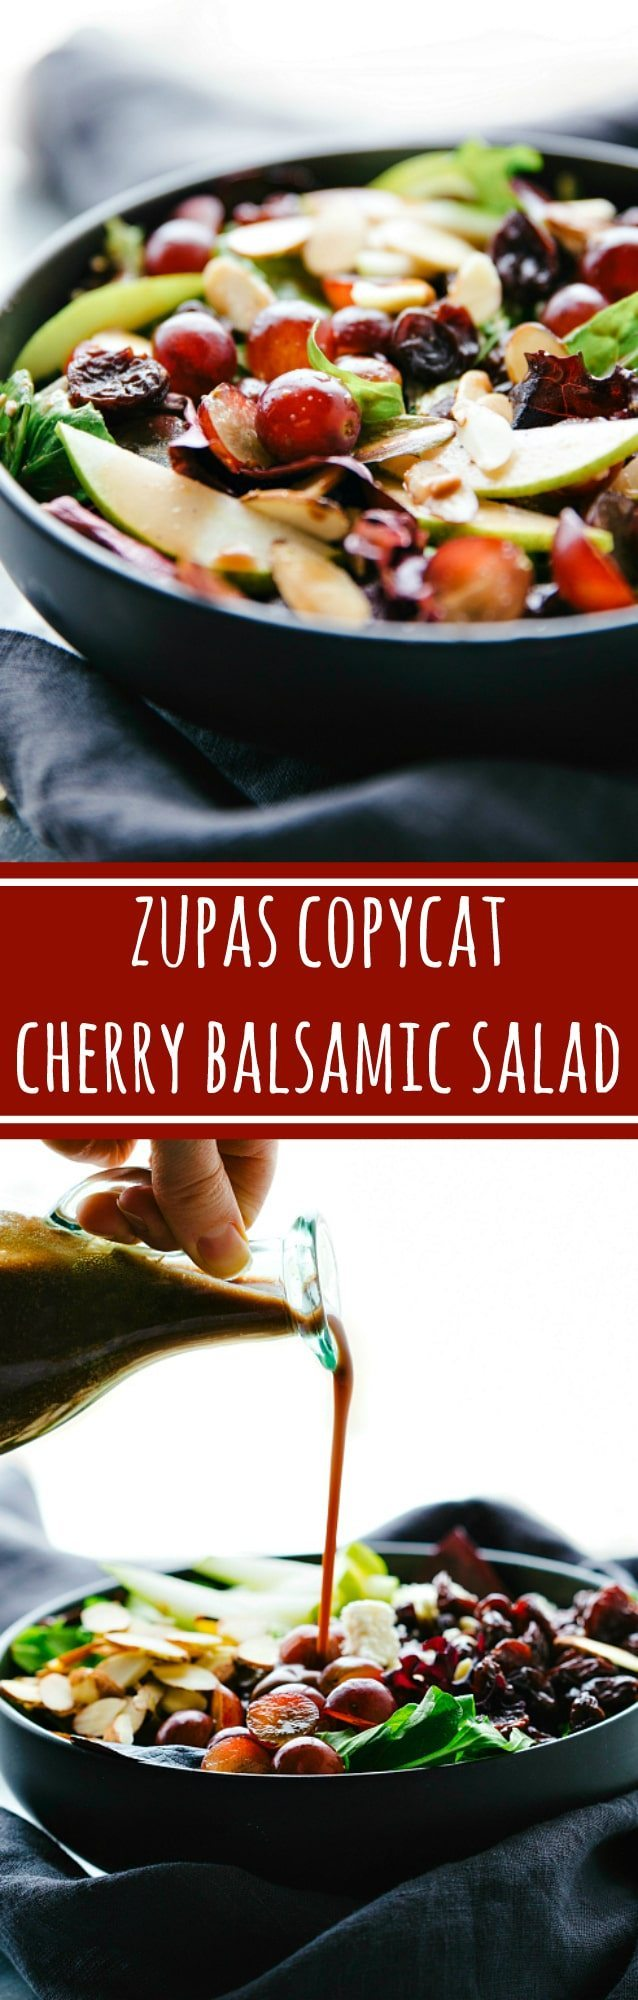 The easiest blender cherry balsamic dressing on a simple Zupas copycat salad!